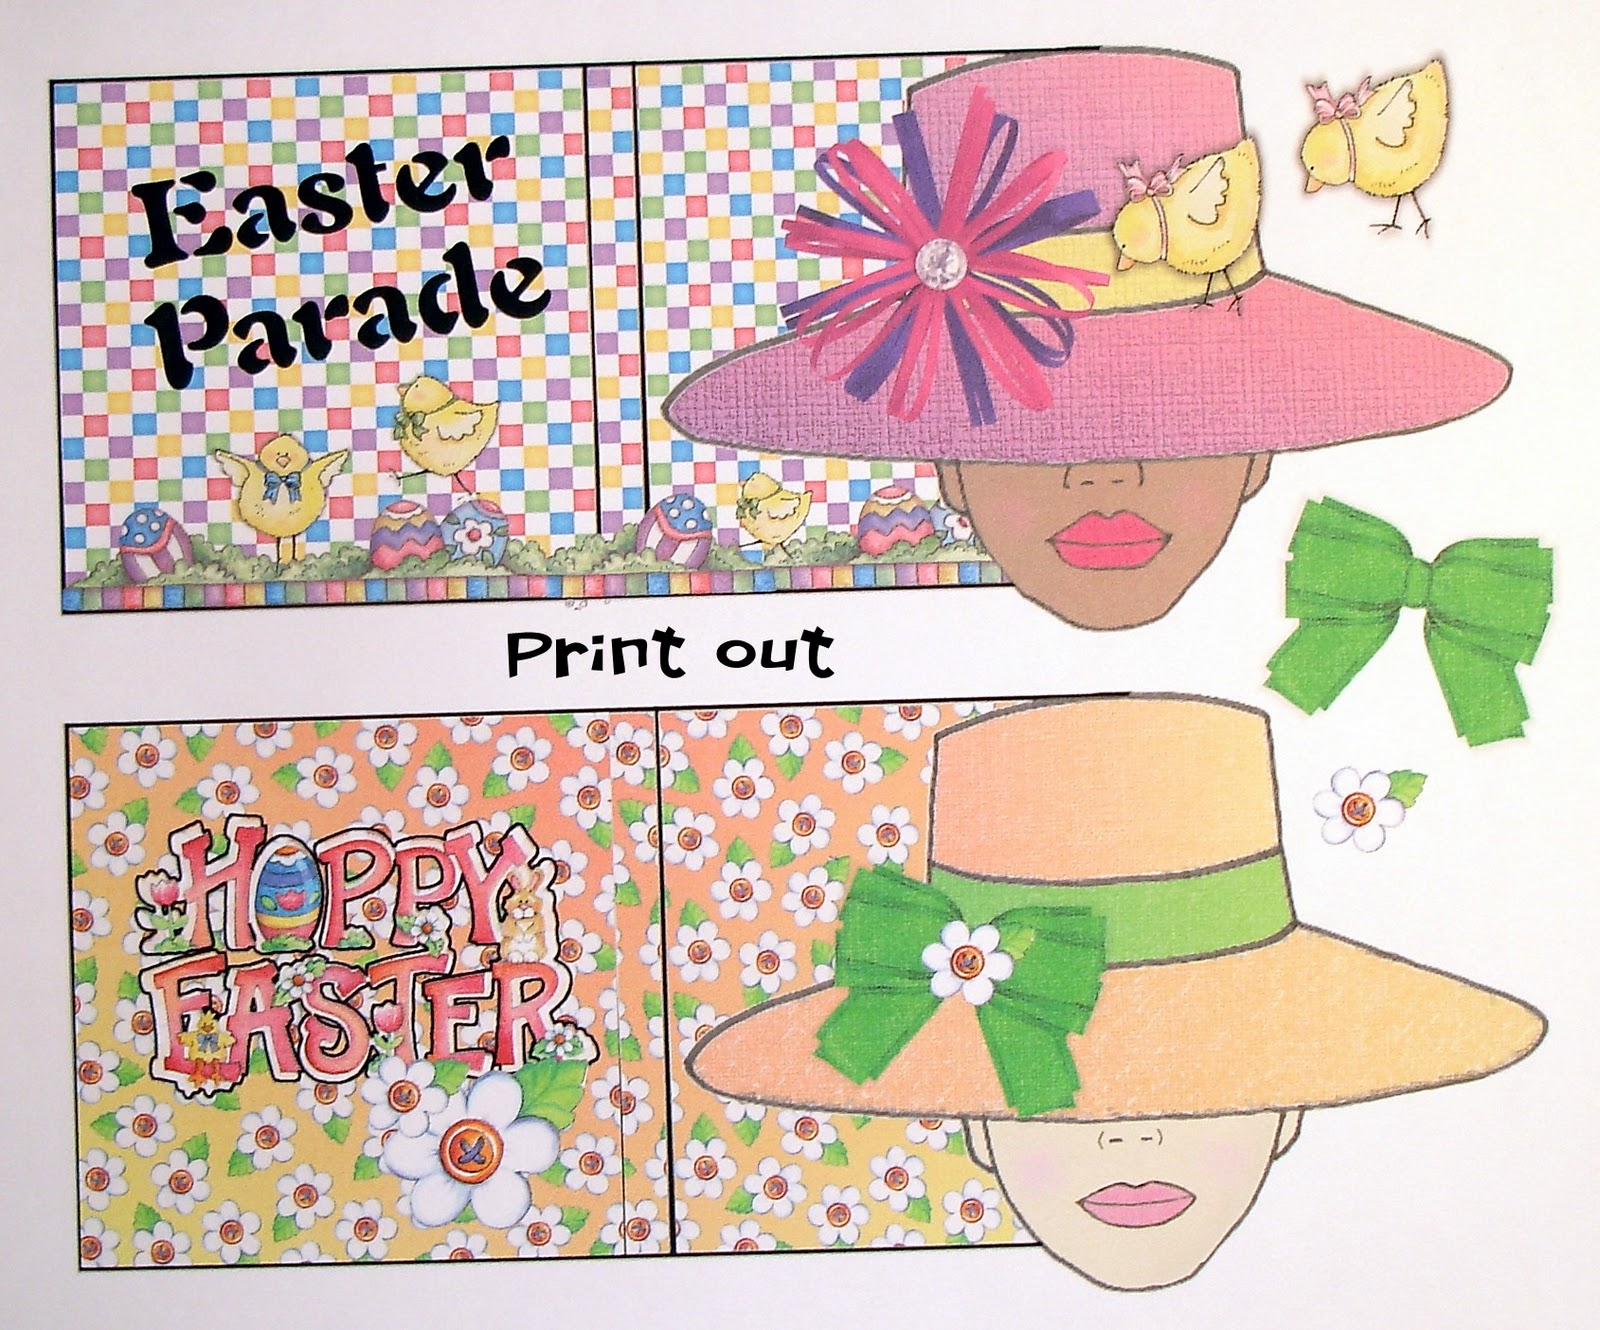 Easter bonnet printable templates 28 images 1000 for Easter bonnet printable templates